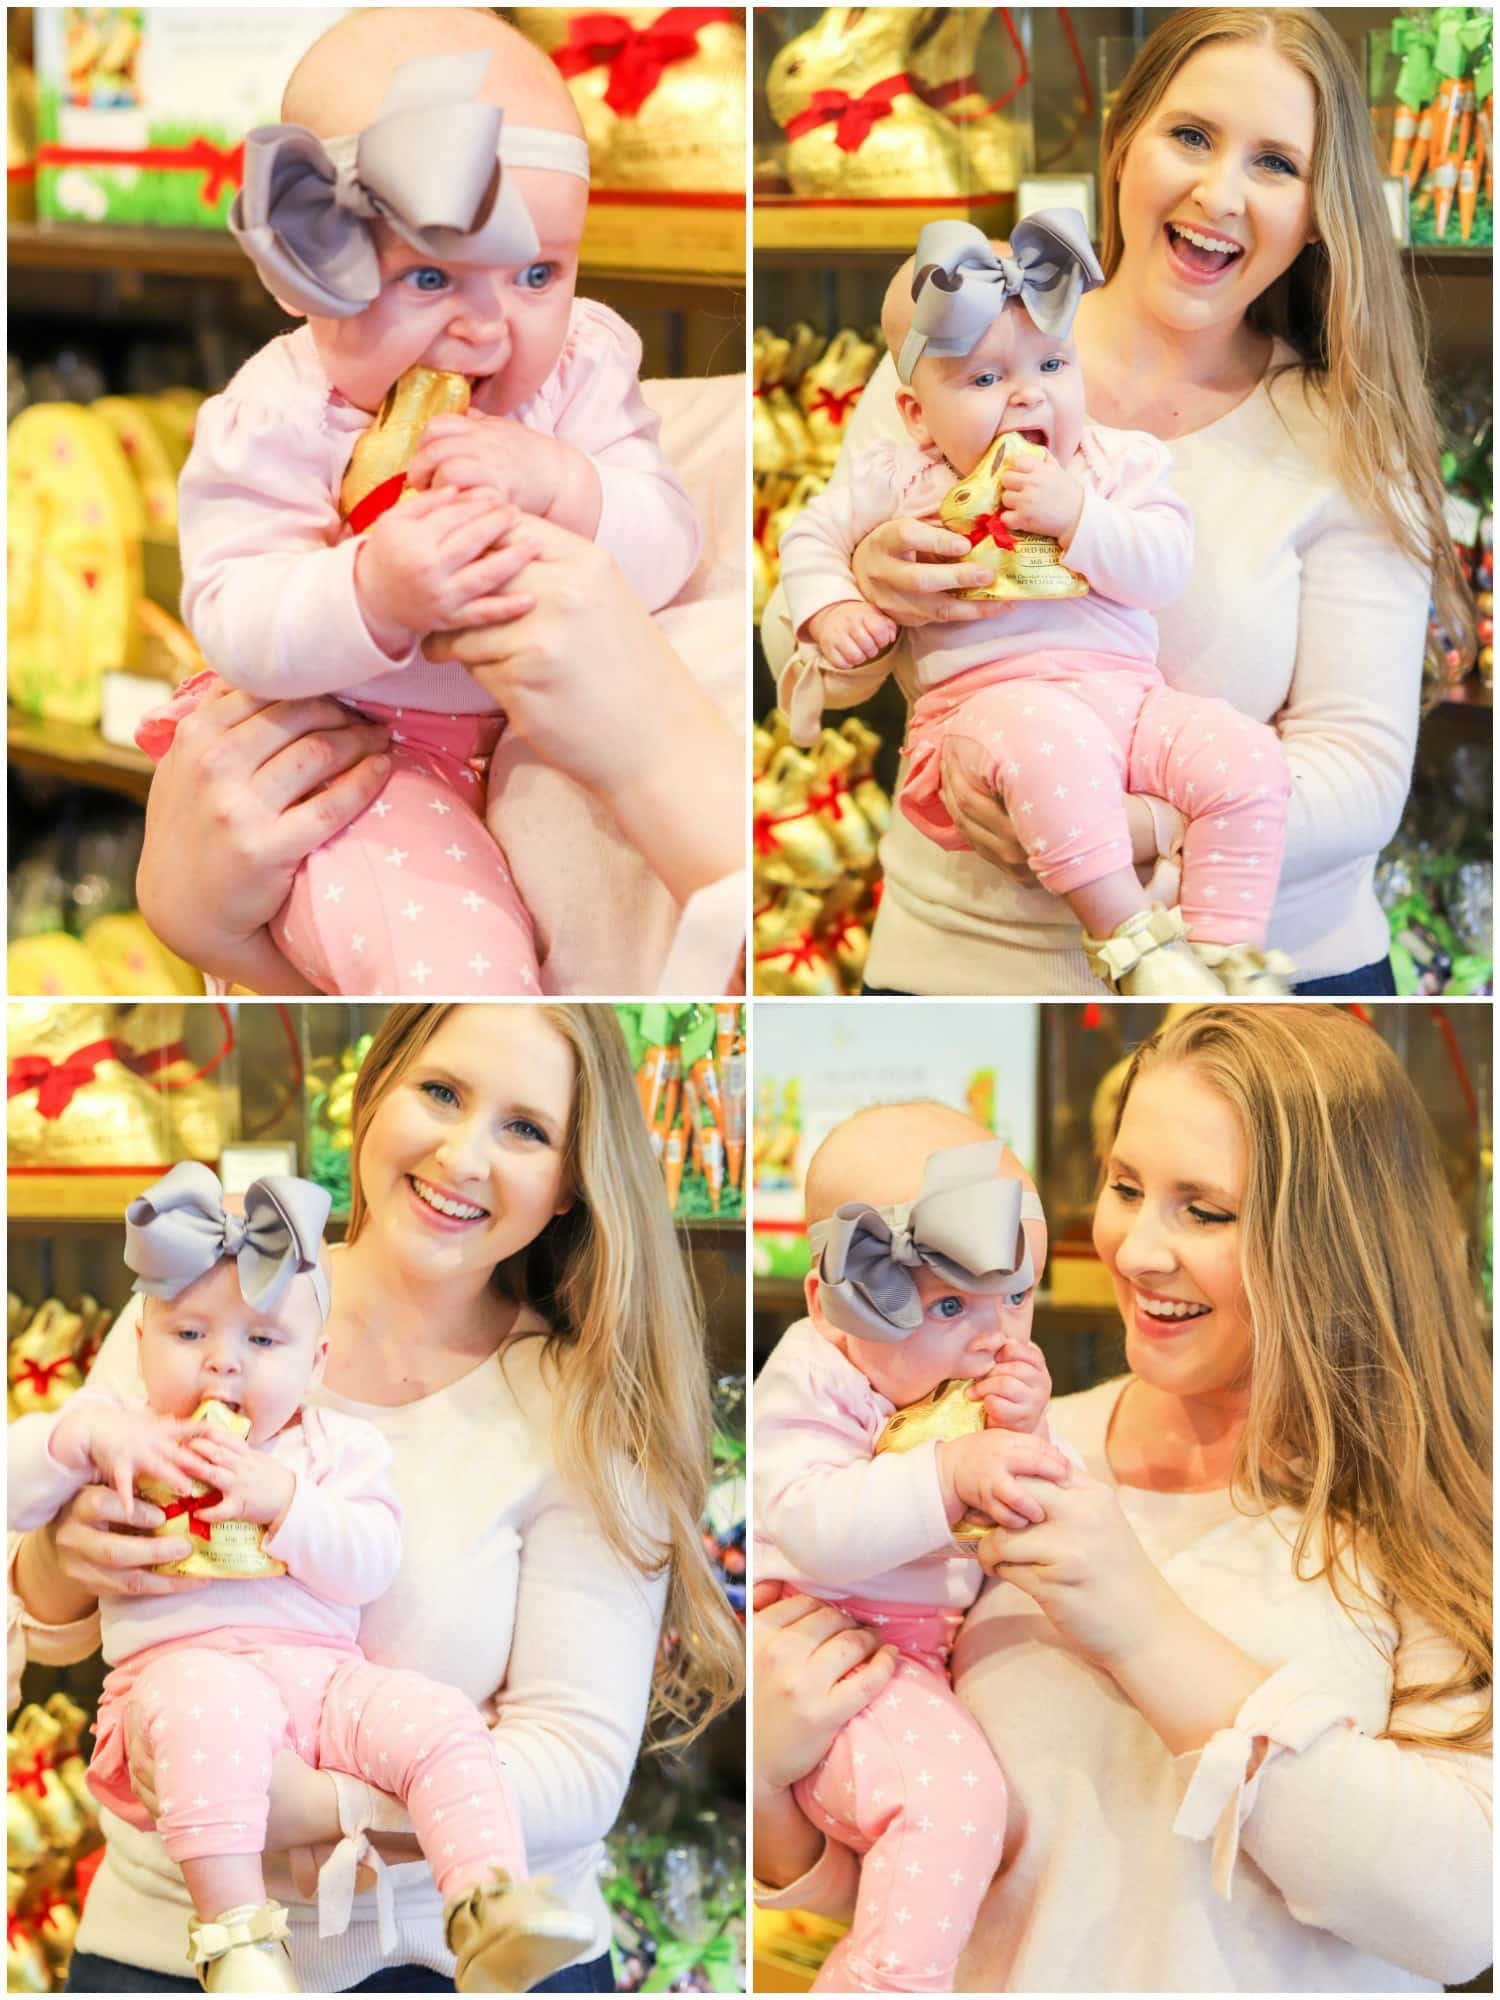 cute baby girl in pink with big bow eating chocolate golden bunny at lindt store with smiling beautiful mom baby's first easter